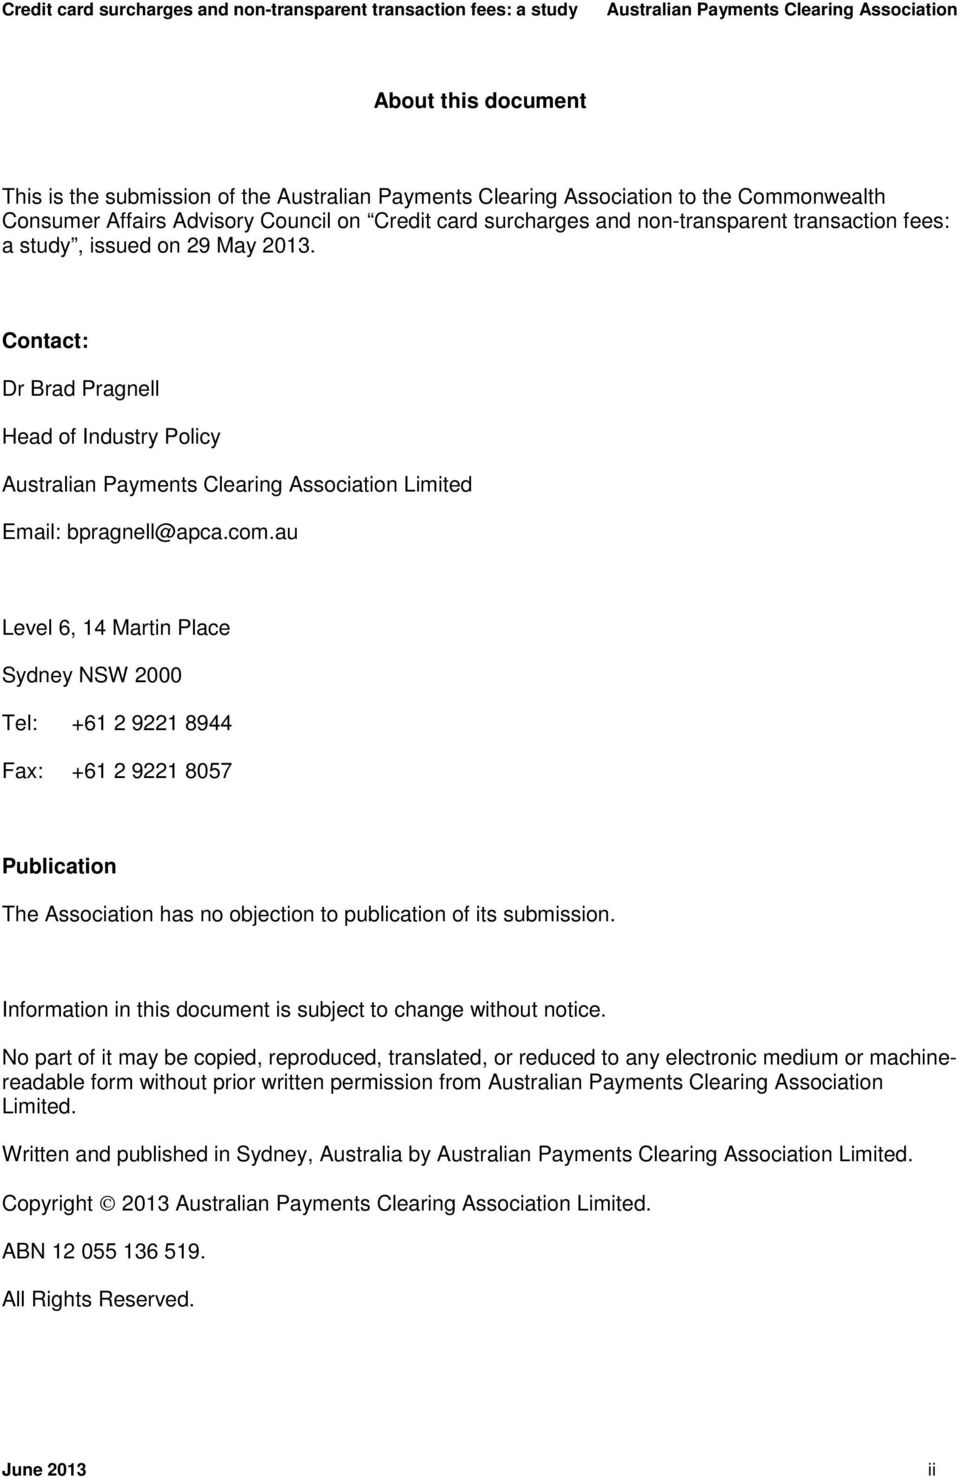 Contact: Dr Brad Pragnell Head of Industry Policy Australian Payments Clearing Limited Email: bpragnell@apca.com.